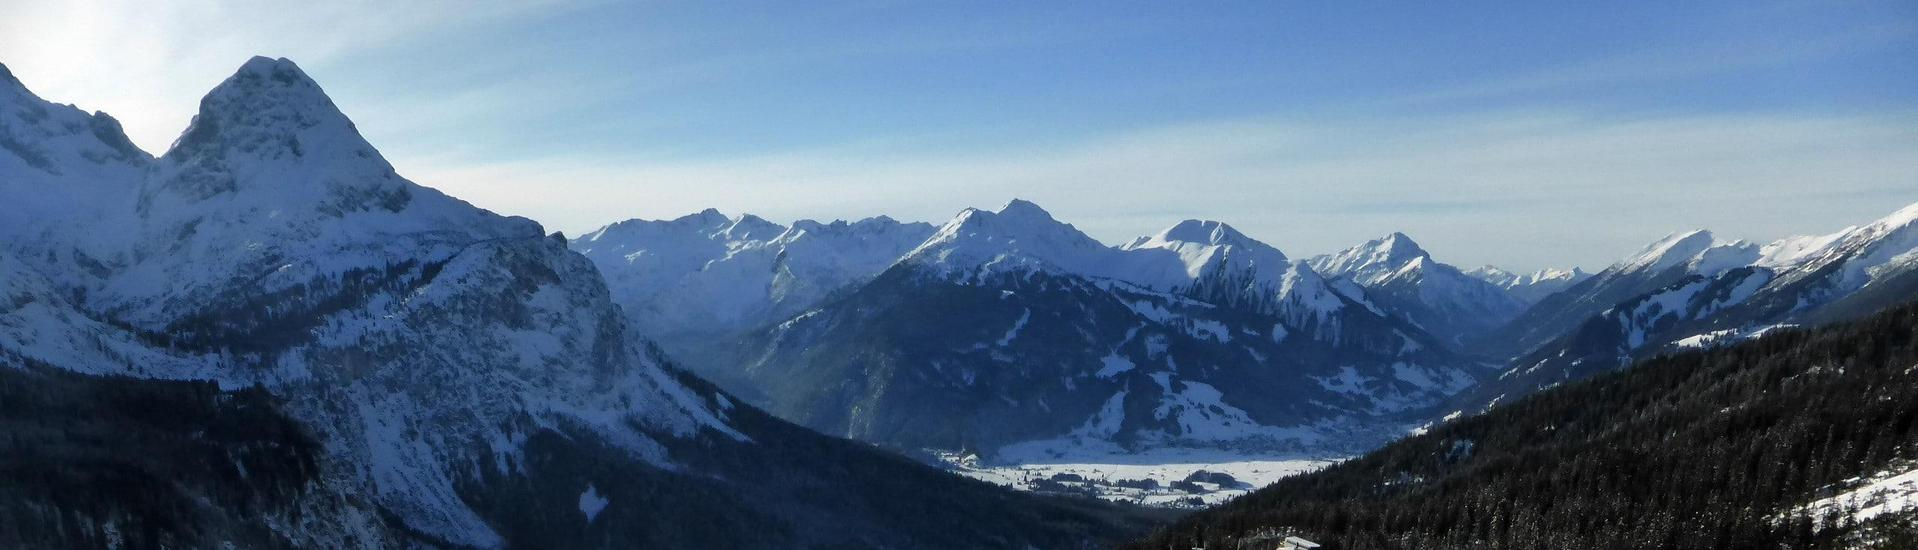 View over the sunny mountain landscape while learning to ski with the ski schools in Ehrwalder Alm.